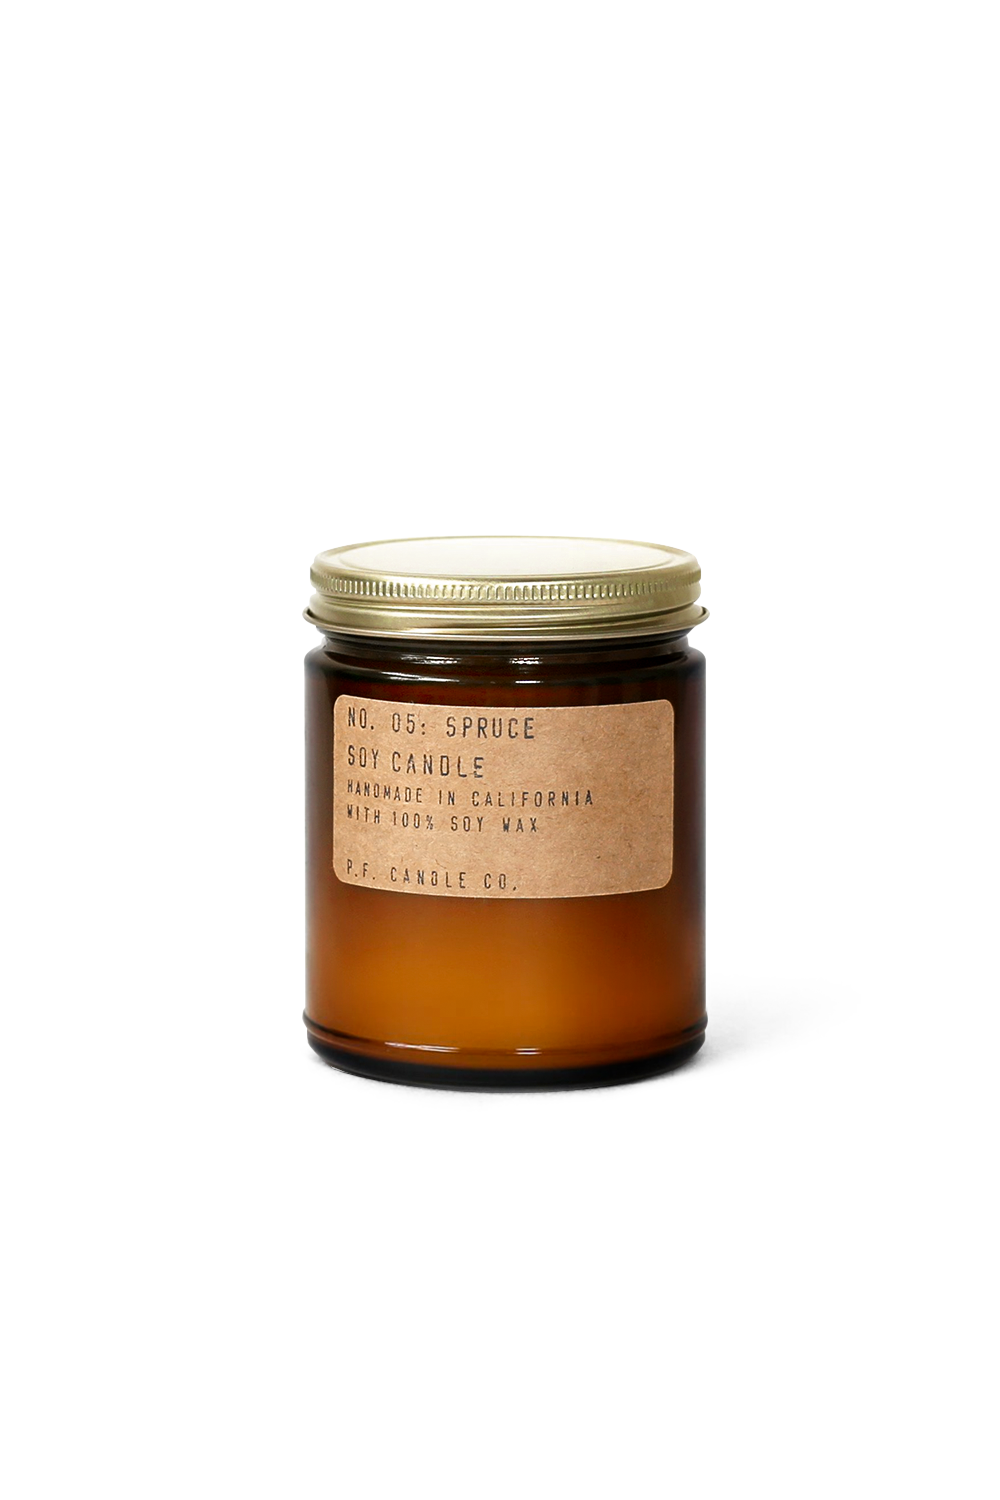 P.F. Candle Co. Spruce Soy Candle